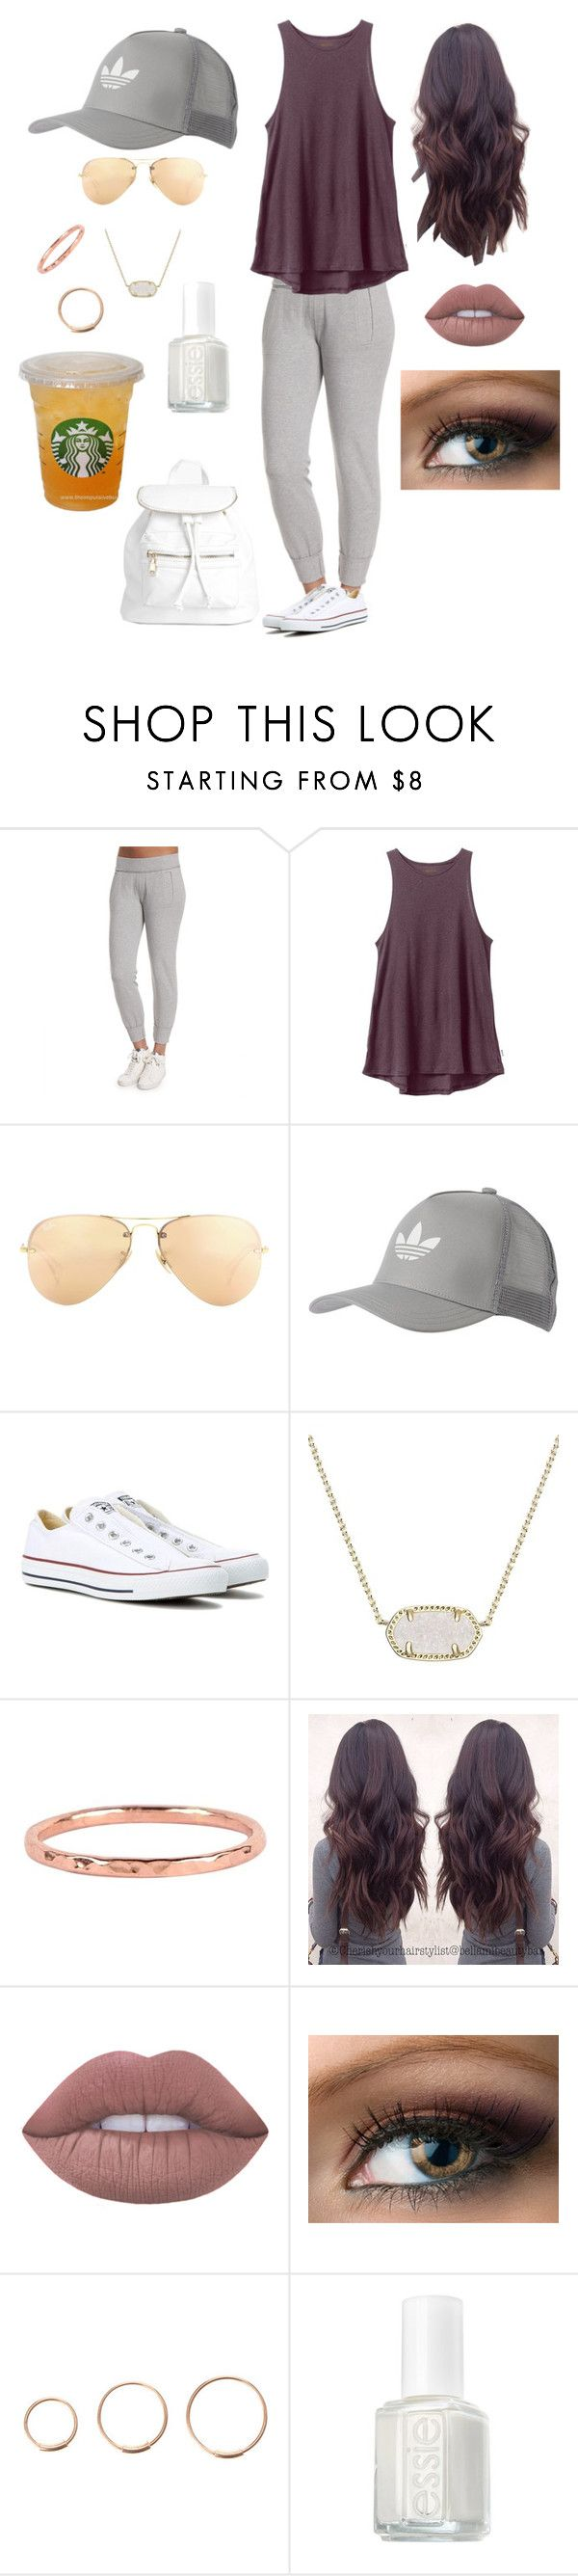 """sporty mom"" by autgalloway on Polyvore featuring Norma Kamali, RVCA, Ray-Ban, adidas Originals, Converse, Kendra Scott, Dana Reed, Lime Crime, Essie and Boohoo"